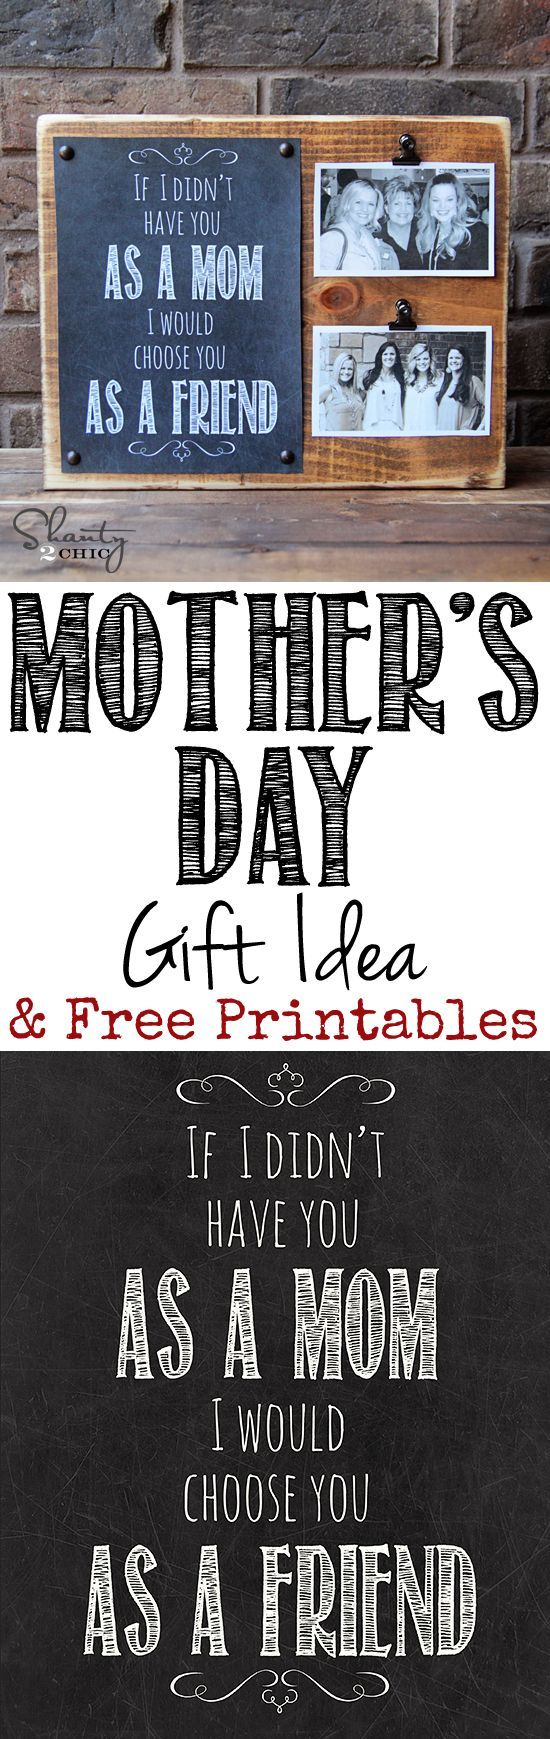 Diy Gifts Ideas Love This Mothers Day Gift And Free Printable